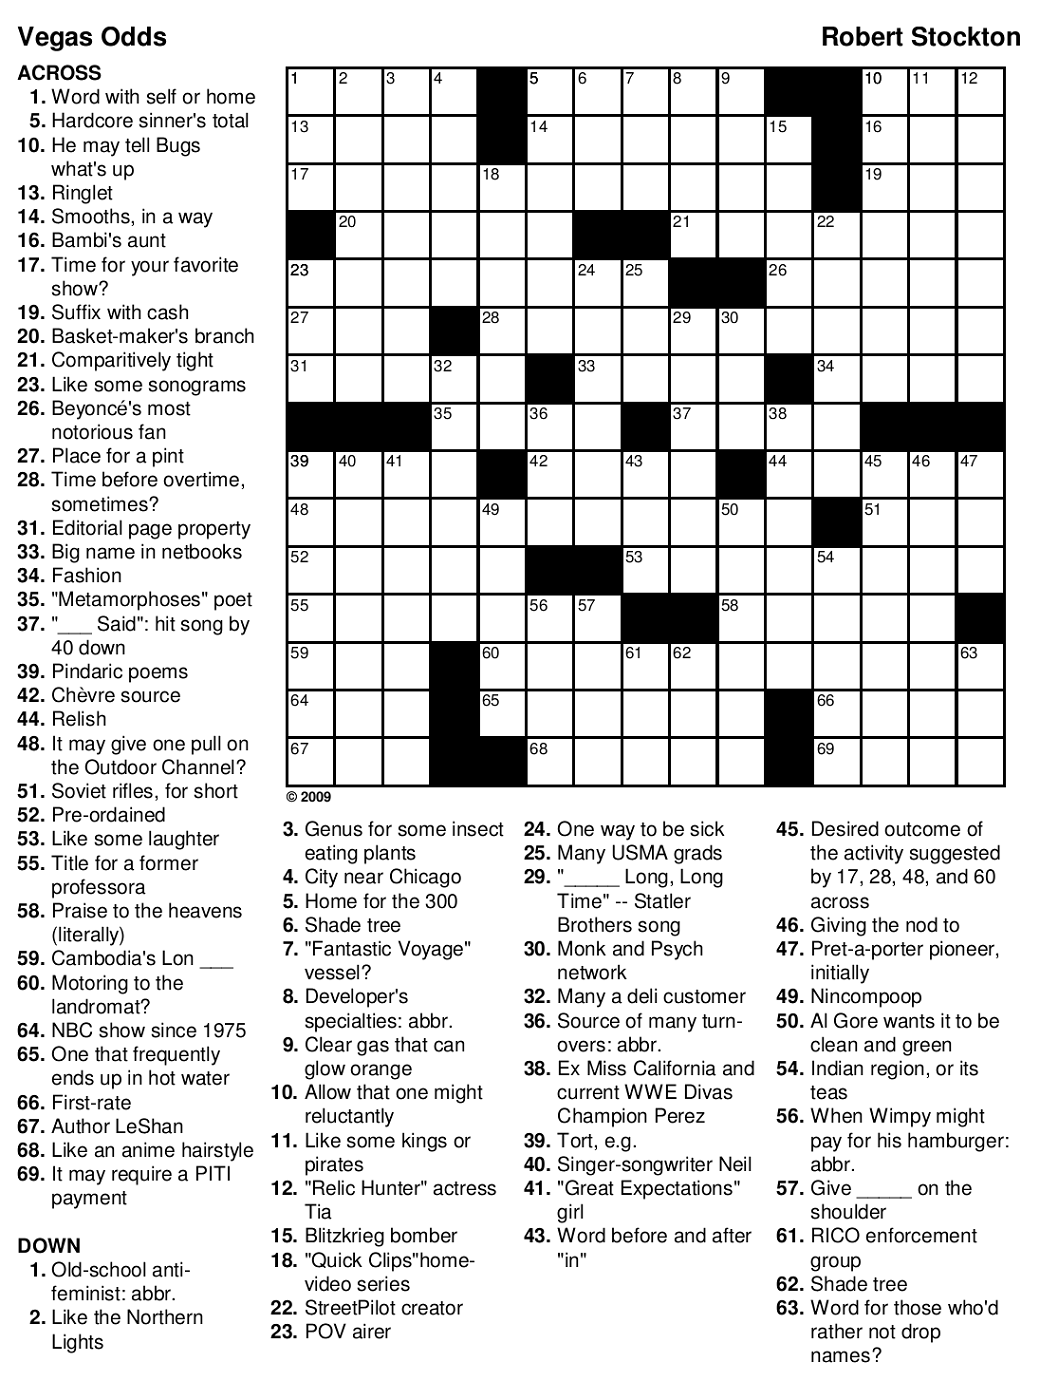 Fourth of july crossword puzzle for adults beyonce sexuality for Fun activities for adults in nyc